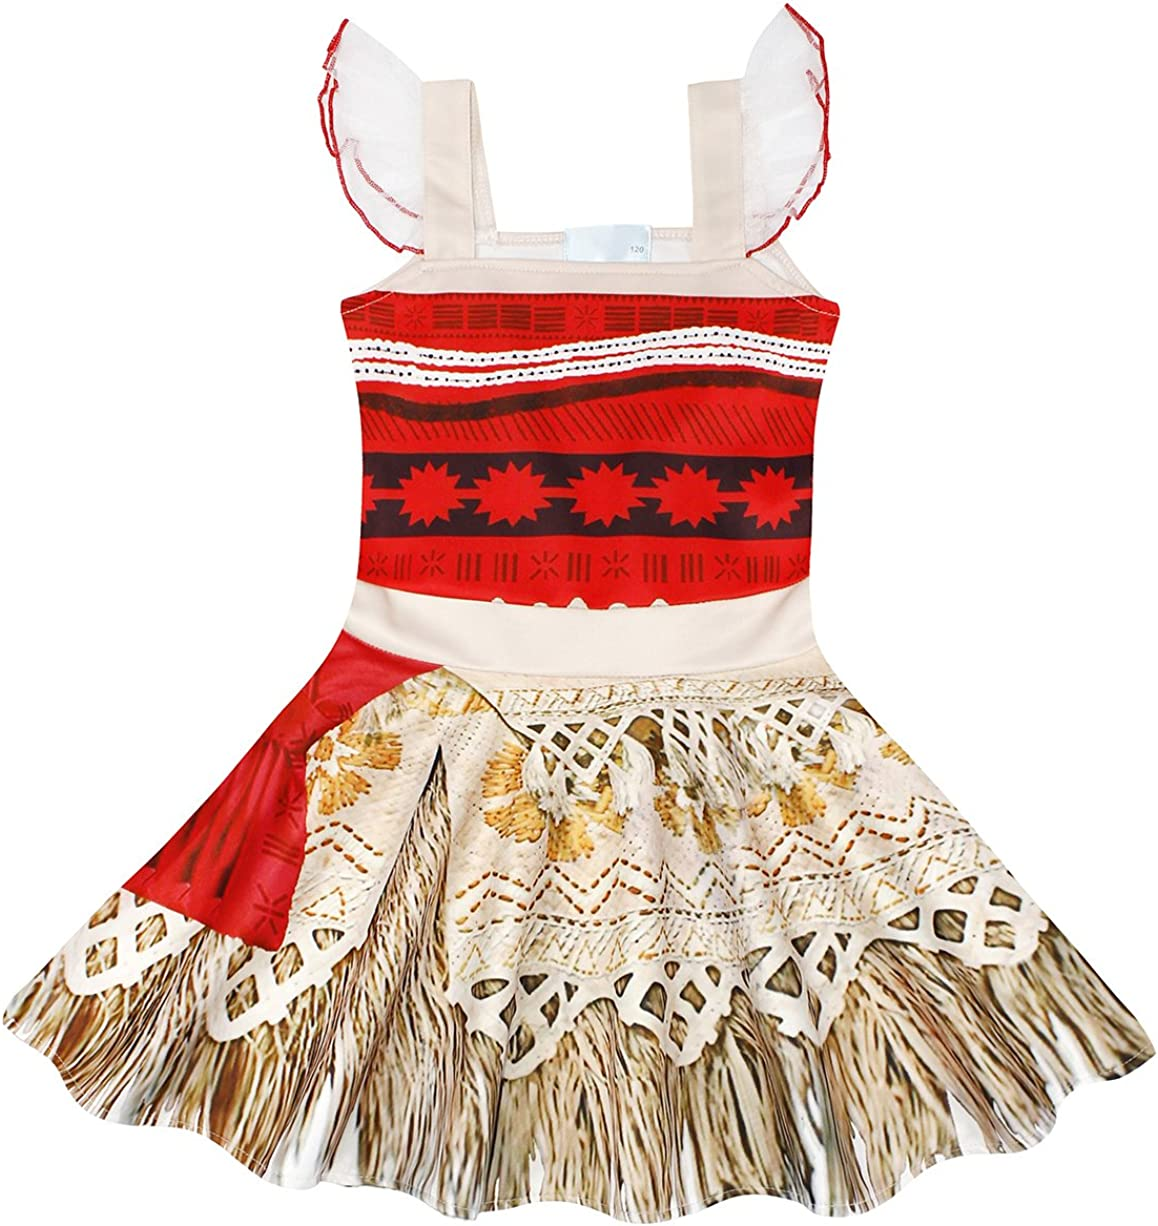 Jurebecia Girls Moana Childs Classic Costume Fancy Dress up Sleeveless Outfit Kids Halloween Birthday Holiday Cosplay Clothing Set Age 1-8 Years